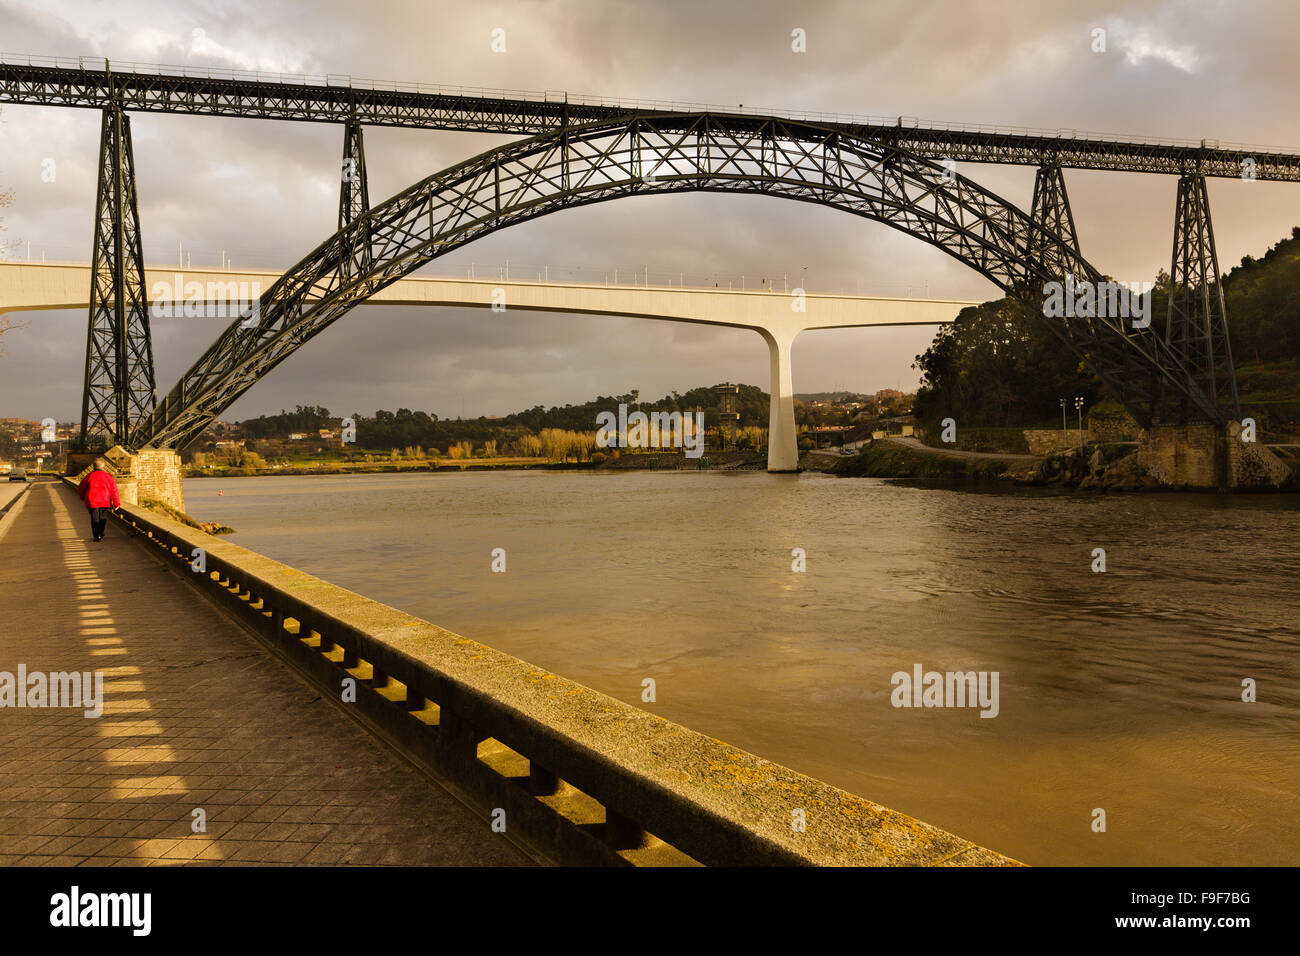 Dona Maria Pia Bridge by Gustav Eiffel 1877, was once longest iron arch in world, Douro River, Oporto, Portugal Stock Photo